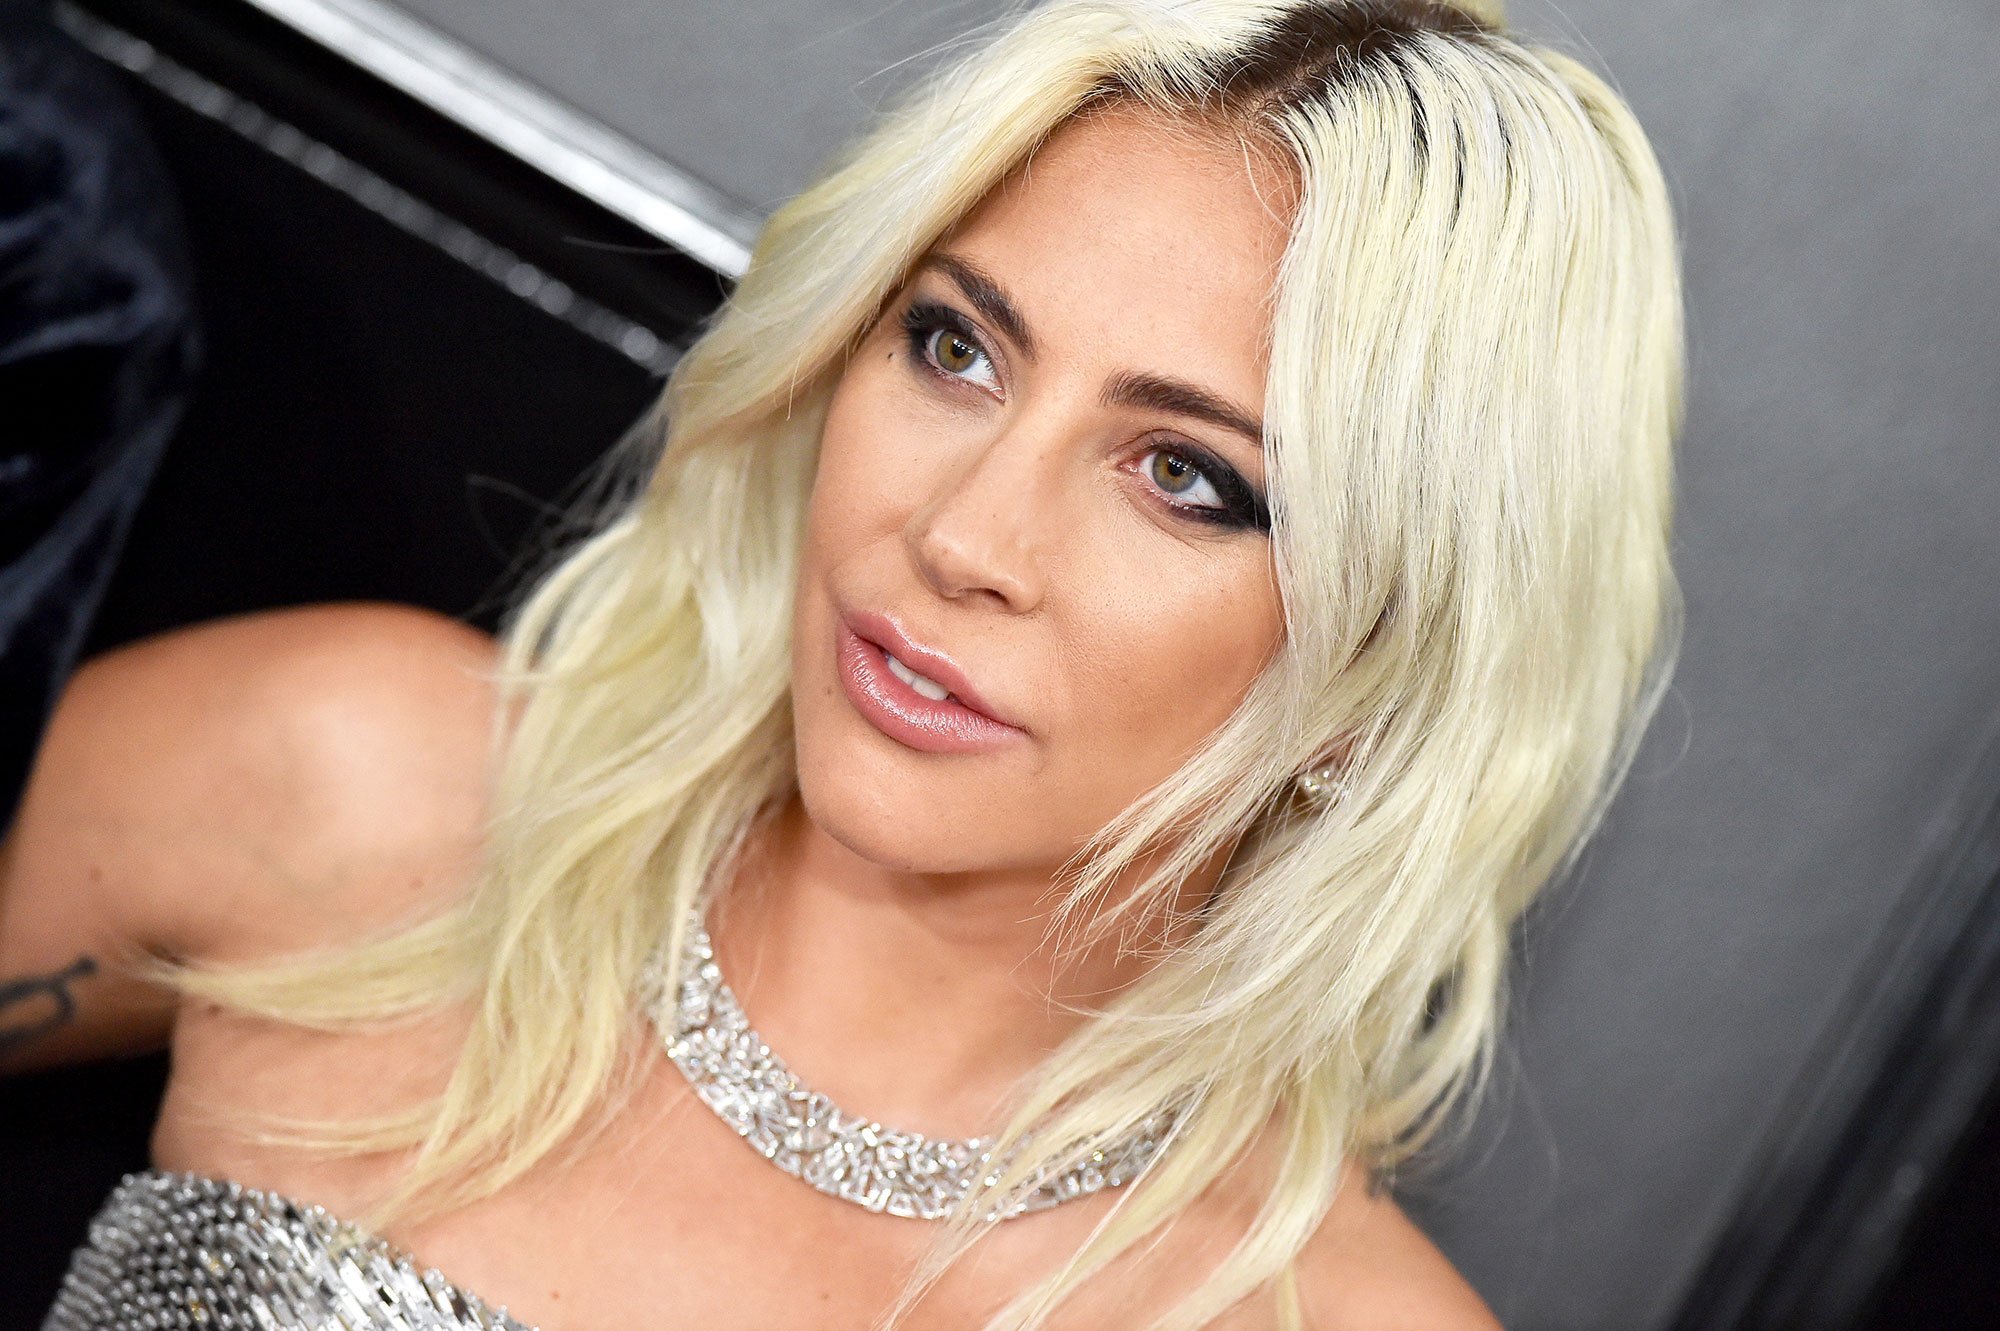 grammys 2019 Lady Gaga - Giving her major star quality, the Grammy winner wore a beautiful Tiffany & Co. necklace that was even shinier than her Celine by Hedi Slimane dress.